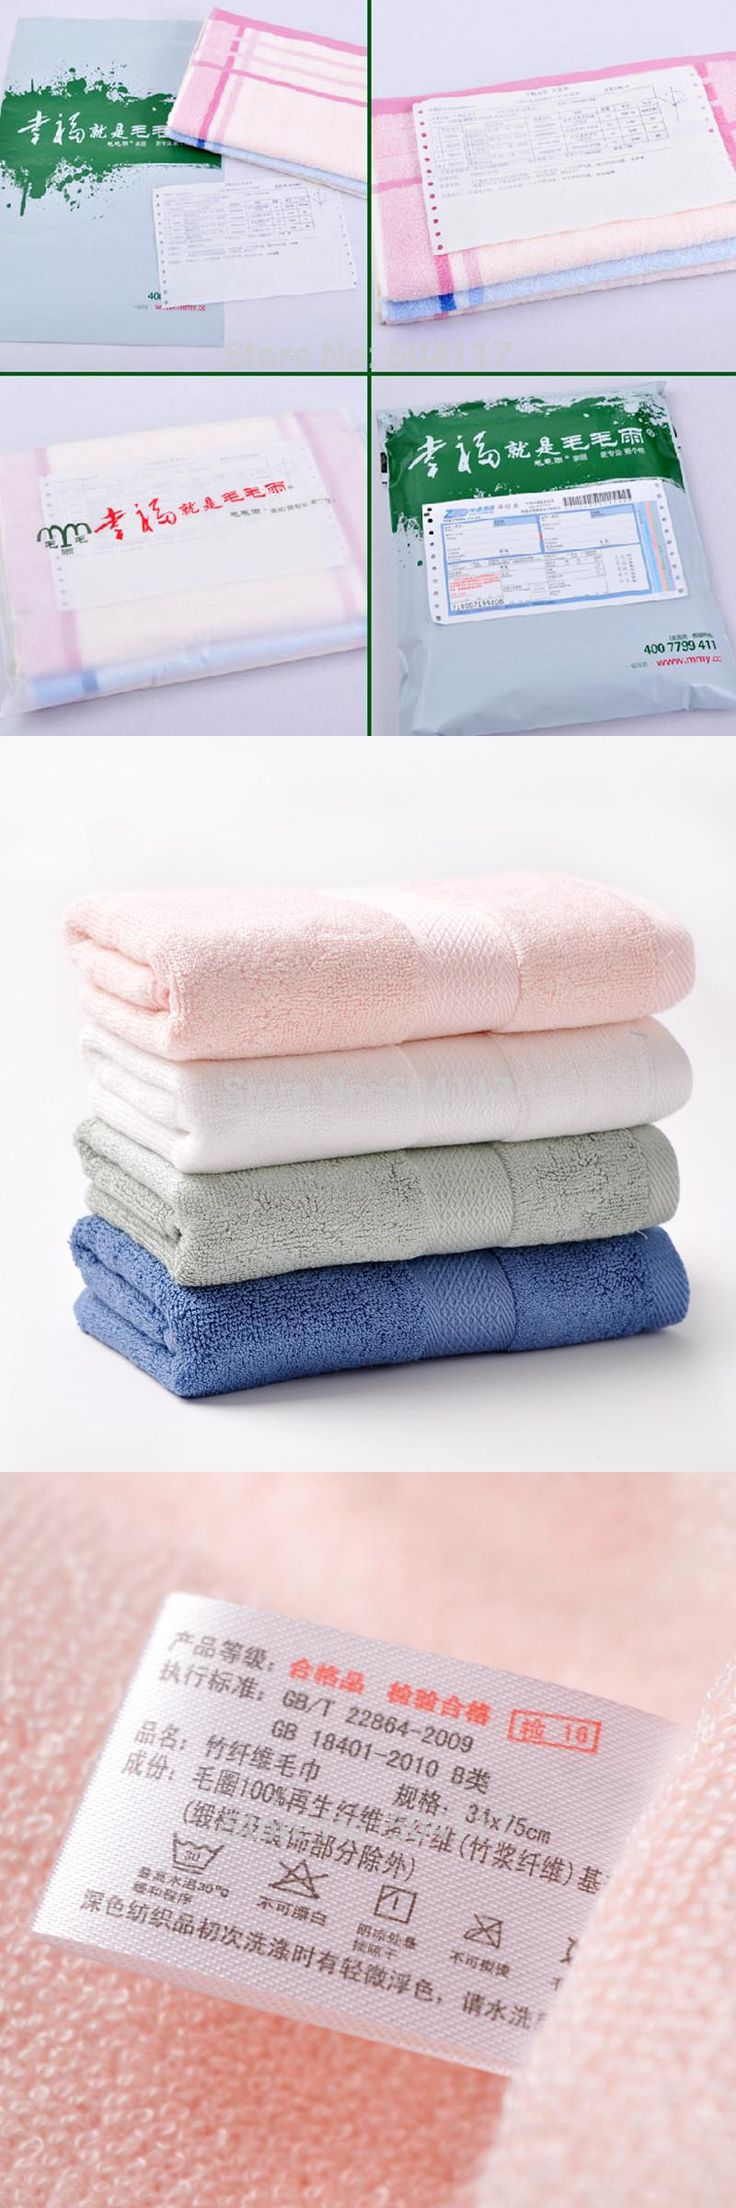 New 2015 1PC/Lot Bamboo Fiber Hand Towel for adult MAOMAOYU Brand Towels Bathroom Face Washcloth and SPA Towels 070047